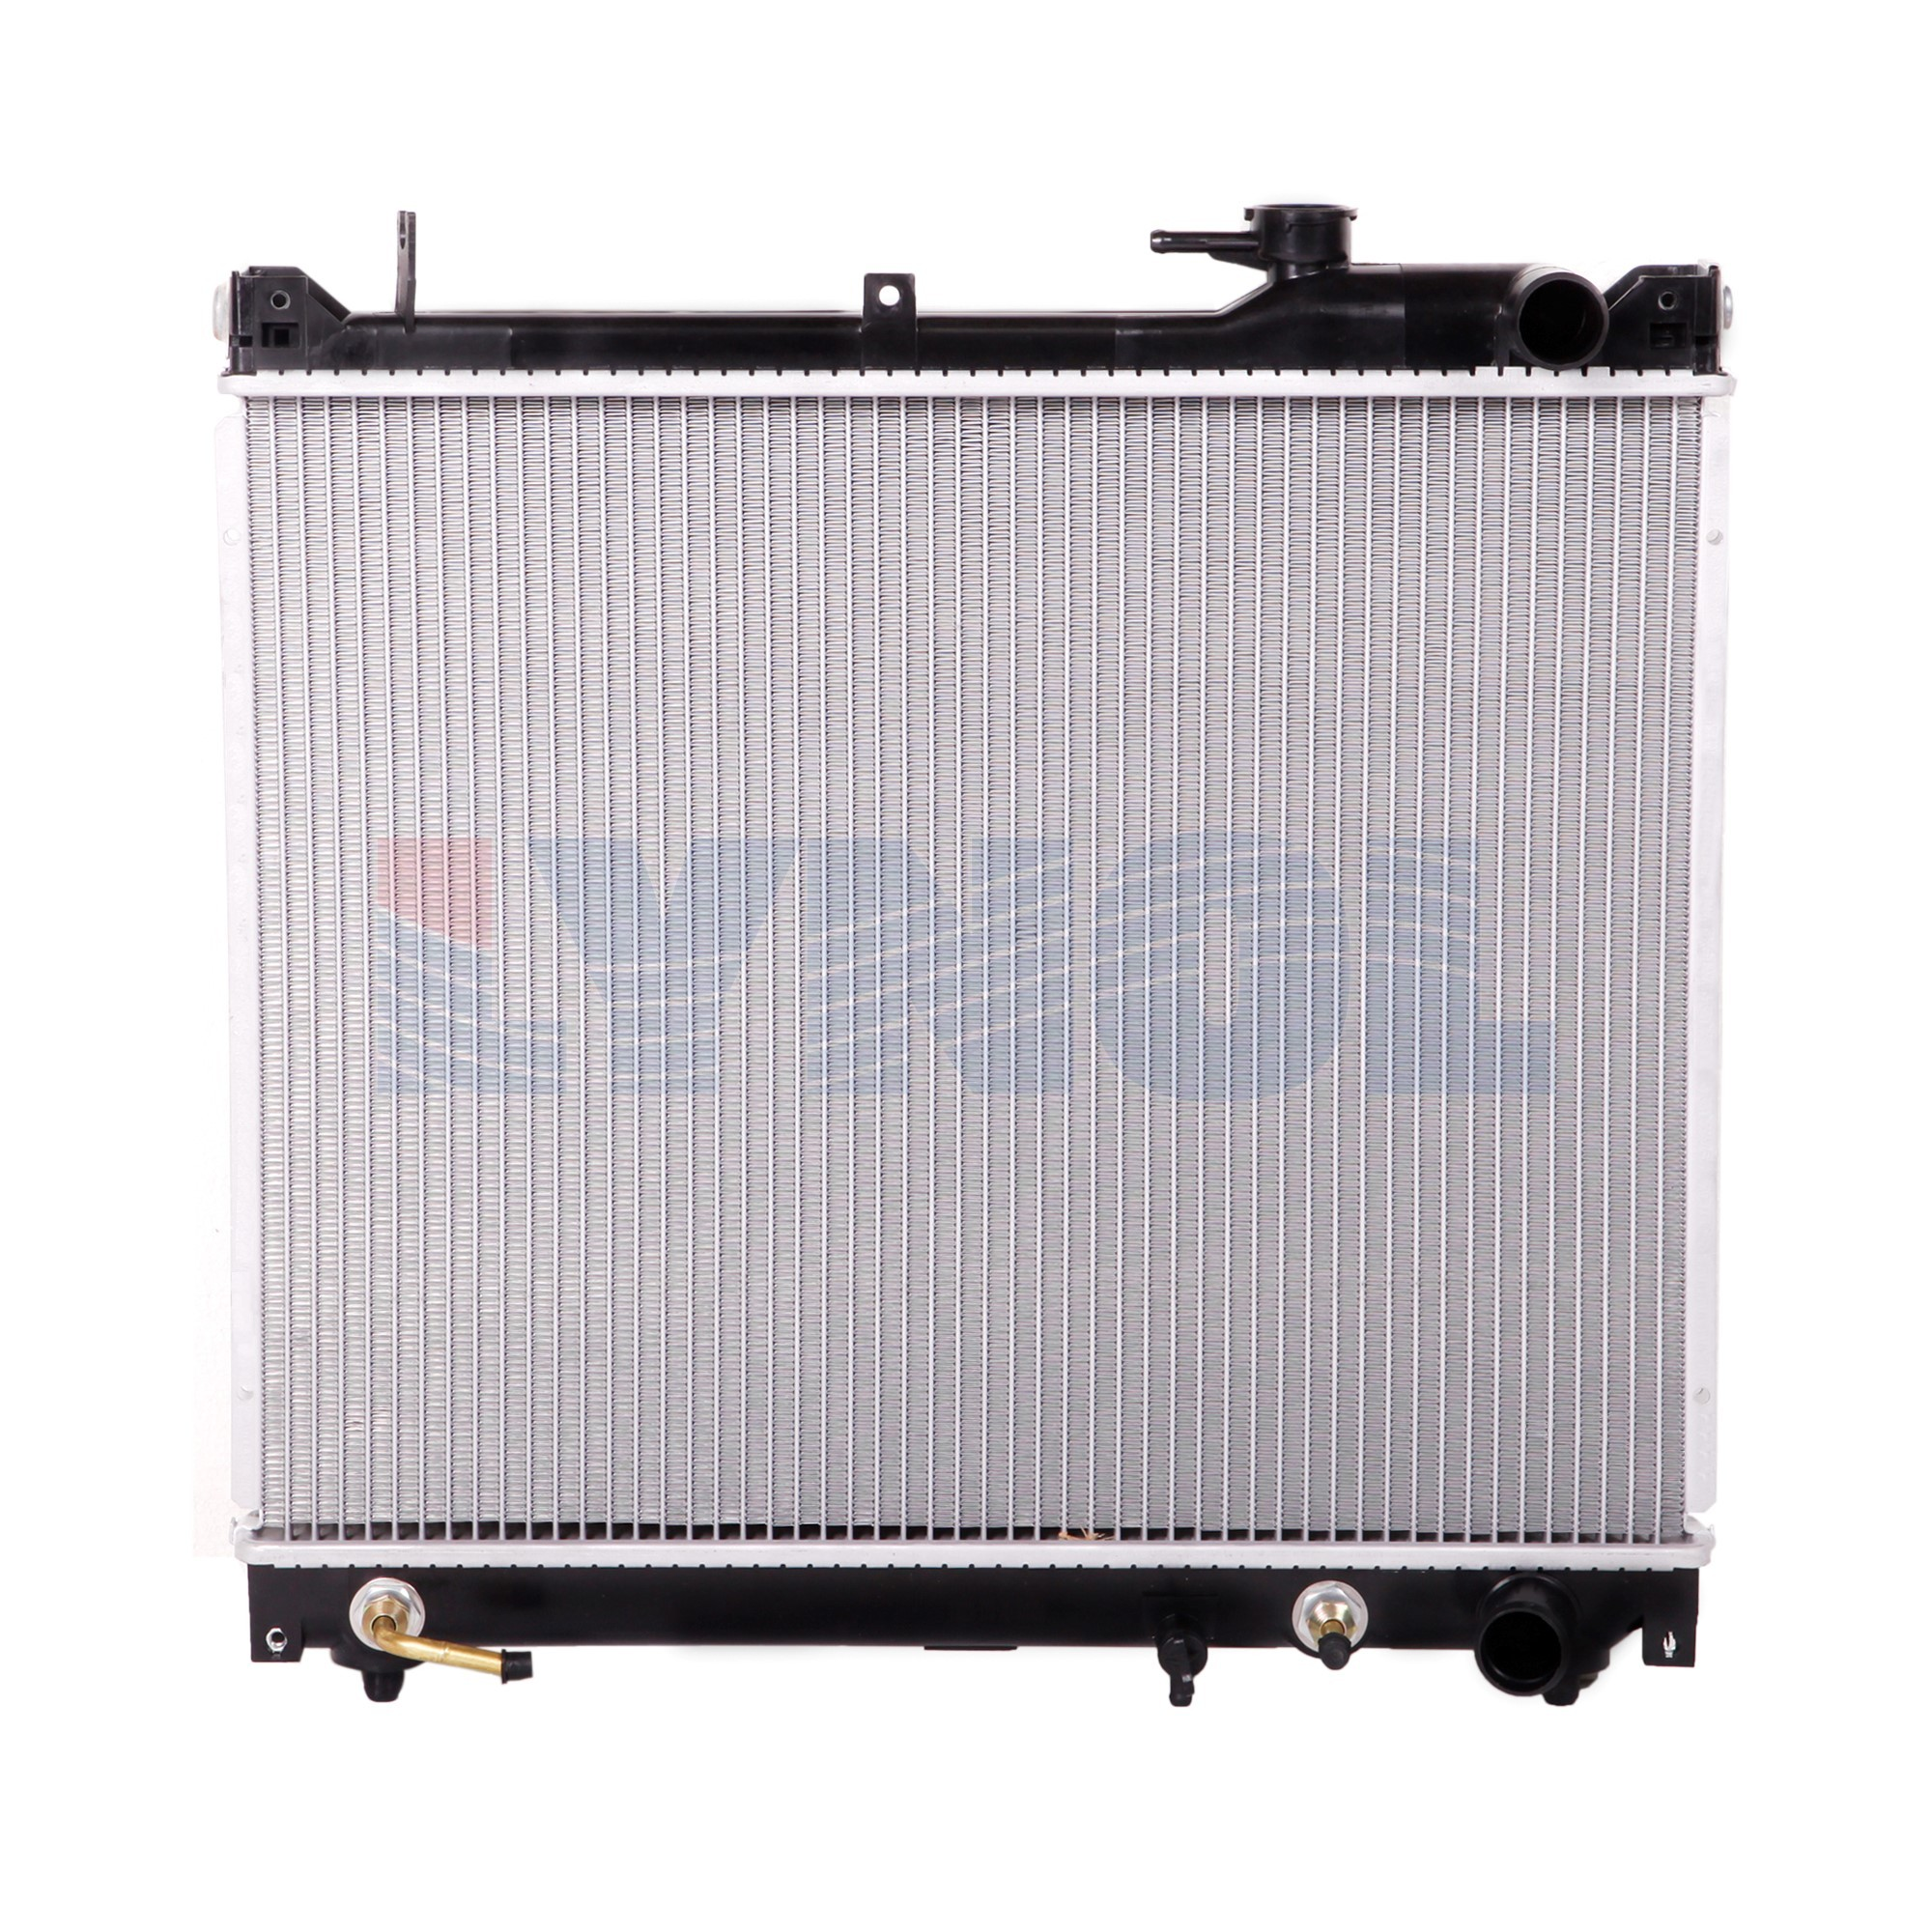 13028 - RADIATOR  - 99-05 Suzuki VITARA A/T 4CY 1.6/2.0L INLET/OUTLET ON RIGHT RAD